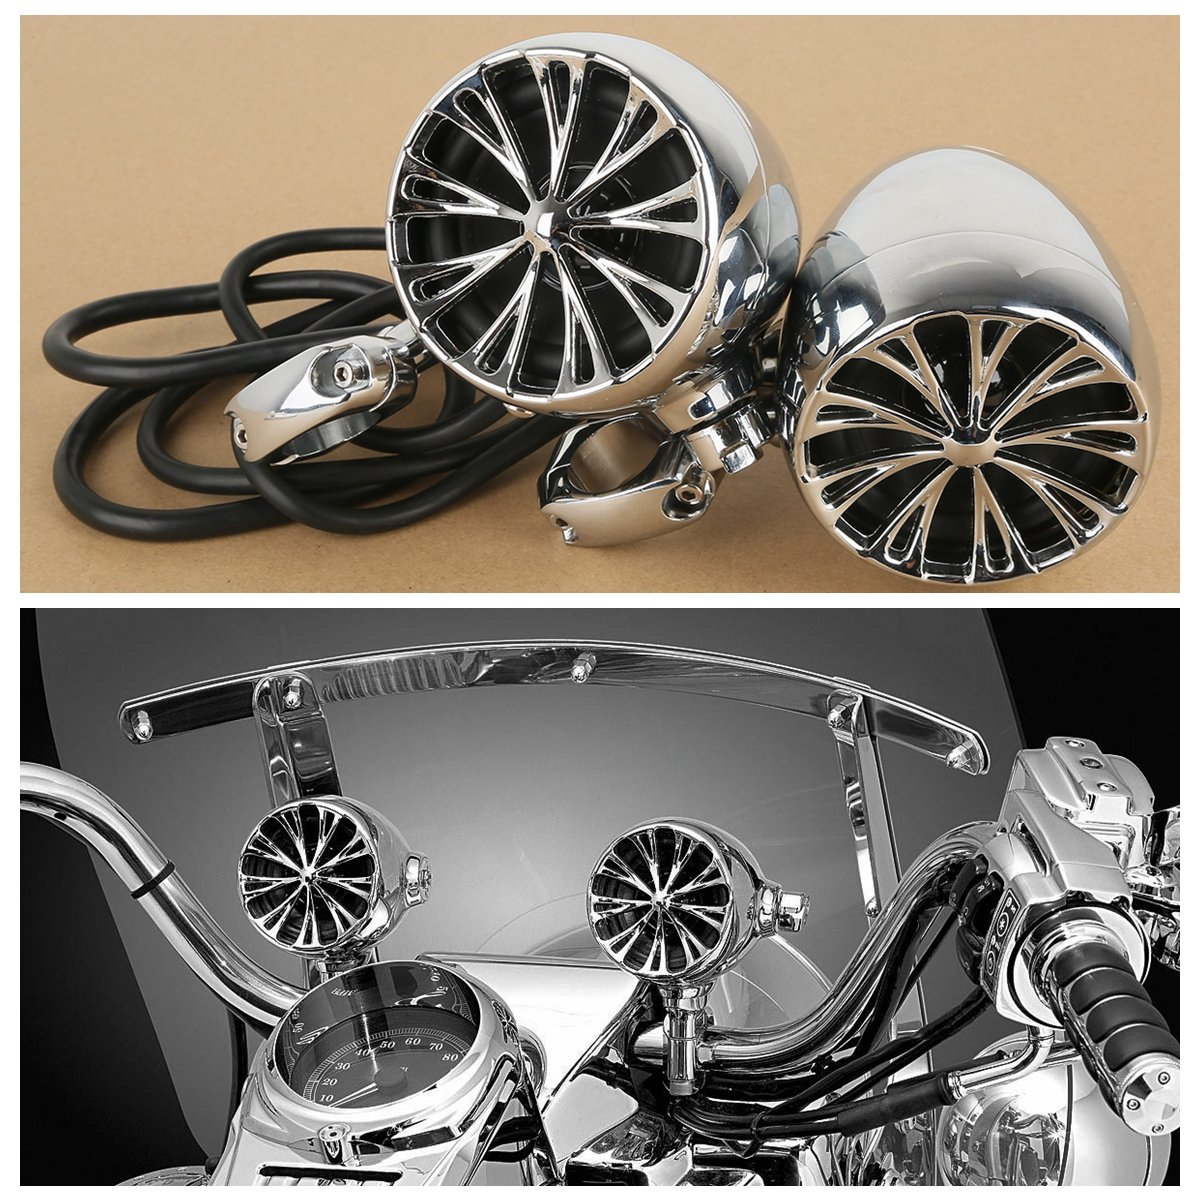 XFMT The Sound of Chrome Speaker System Compatible with Harley Davidson Cruiser 1 Handle Bar 833